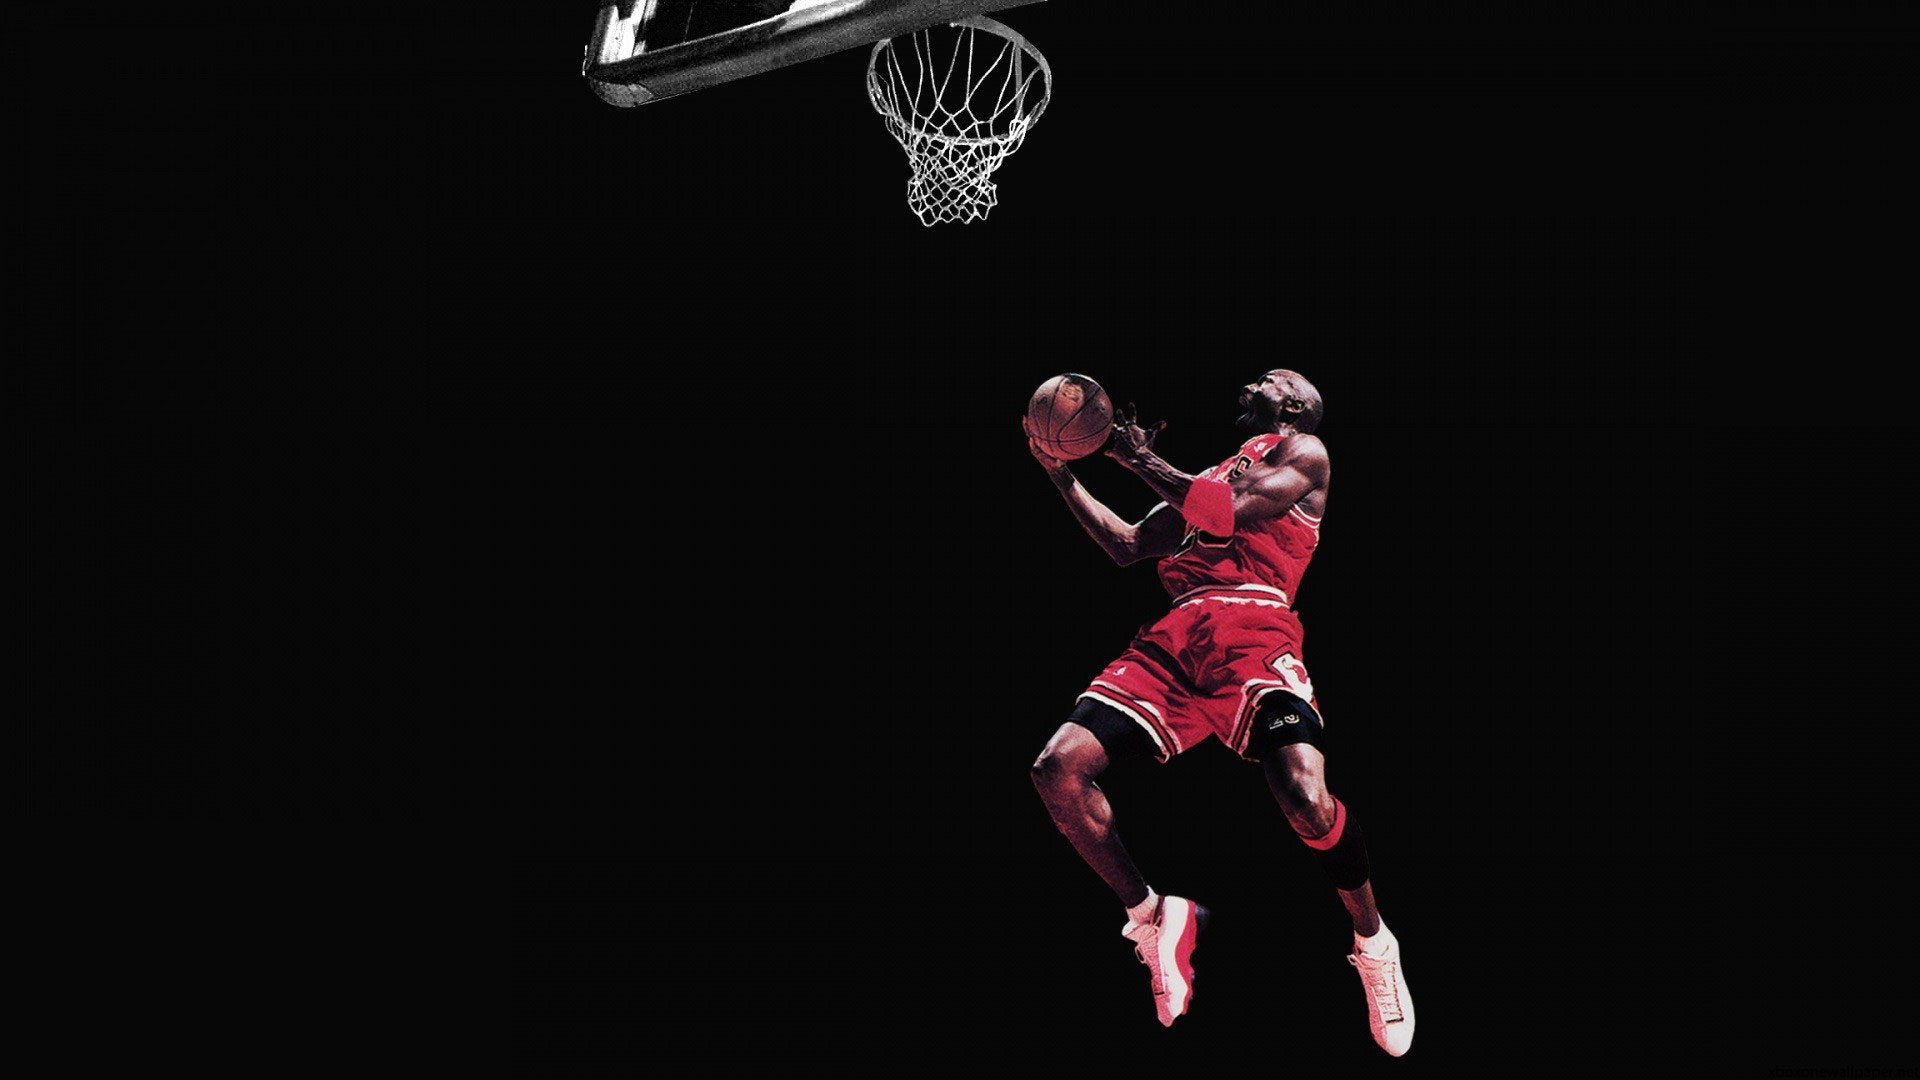 Michael Jordan Wallpaper Xbox One - WallpaperSafari